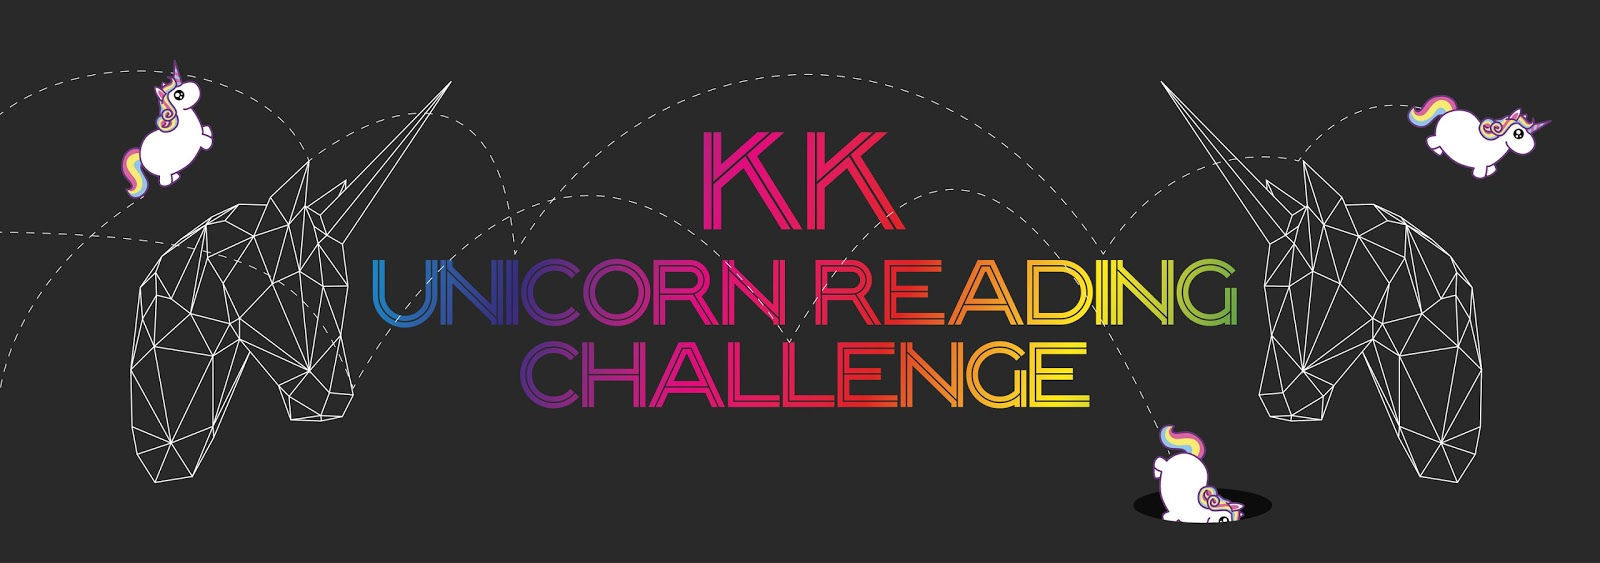 KK UNICORN READING CHALLENGE